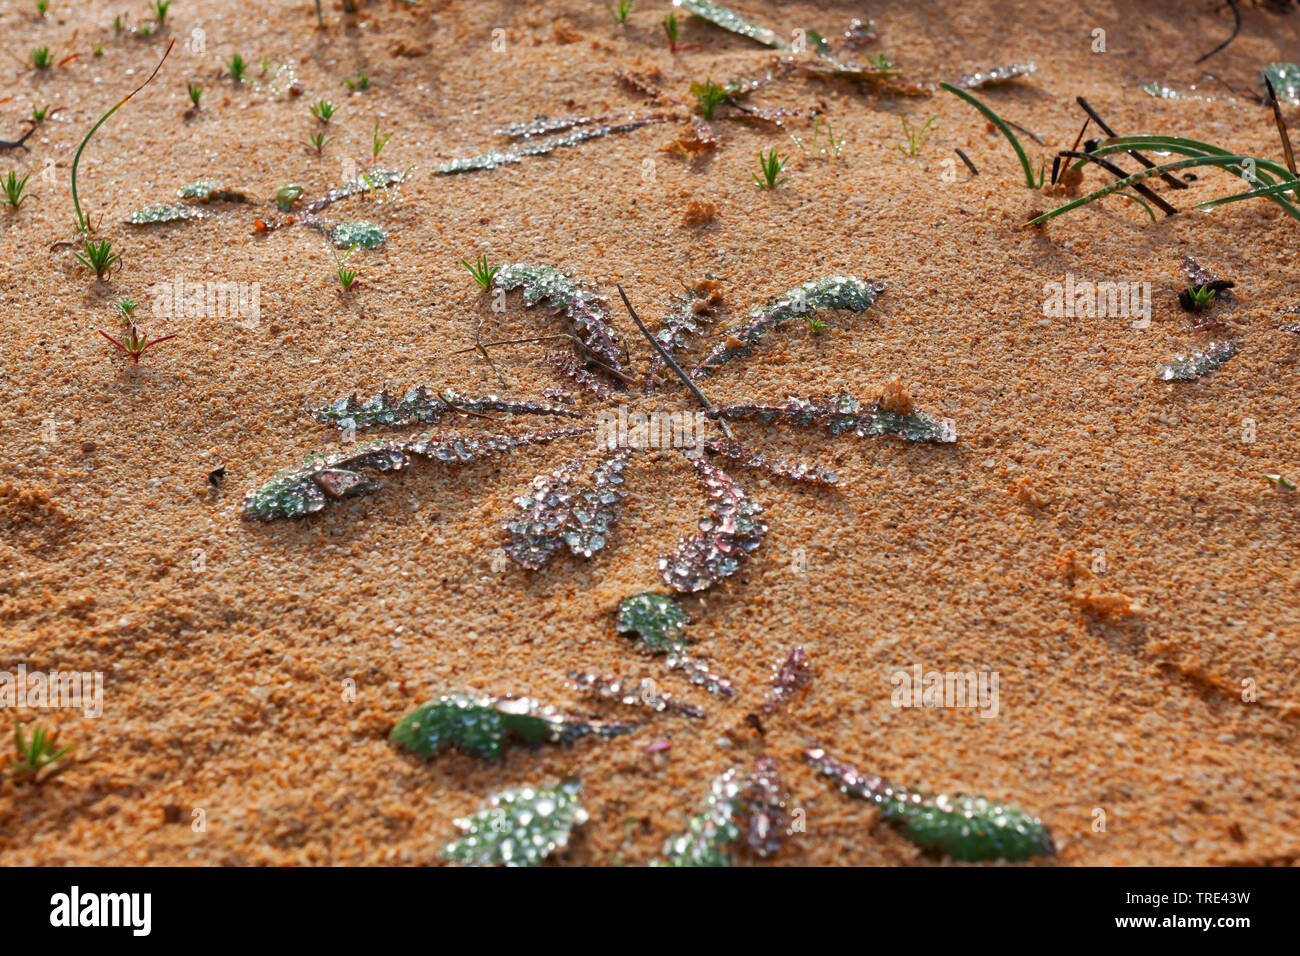 morning dew on a plant, Canary Islands, Fuerteventura Stock Photo